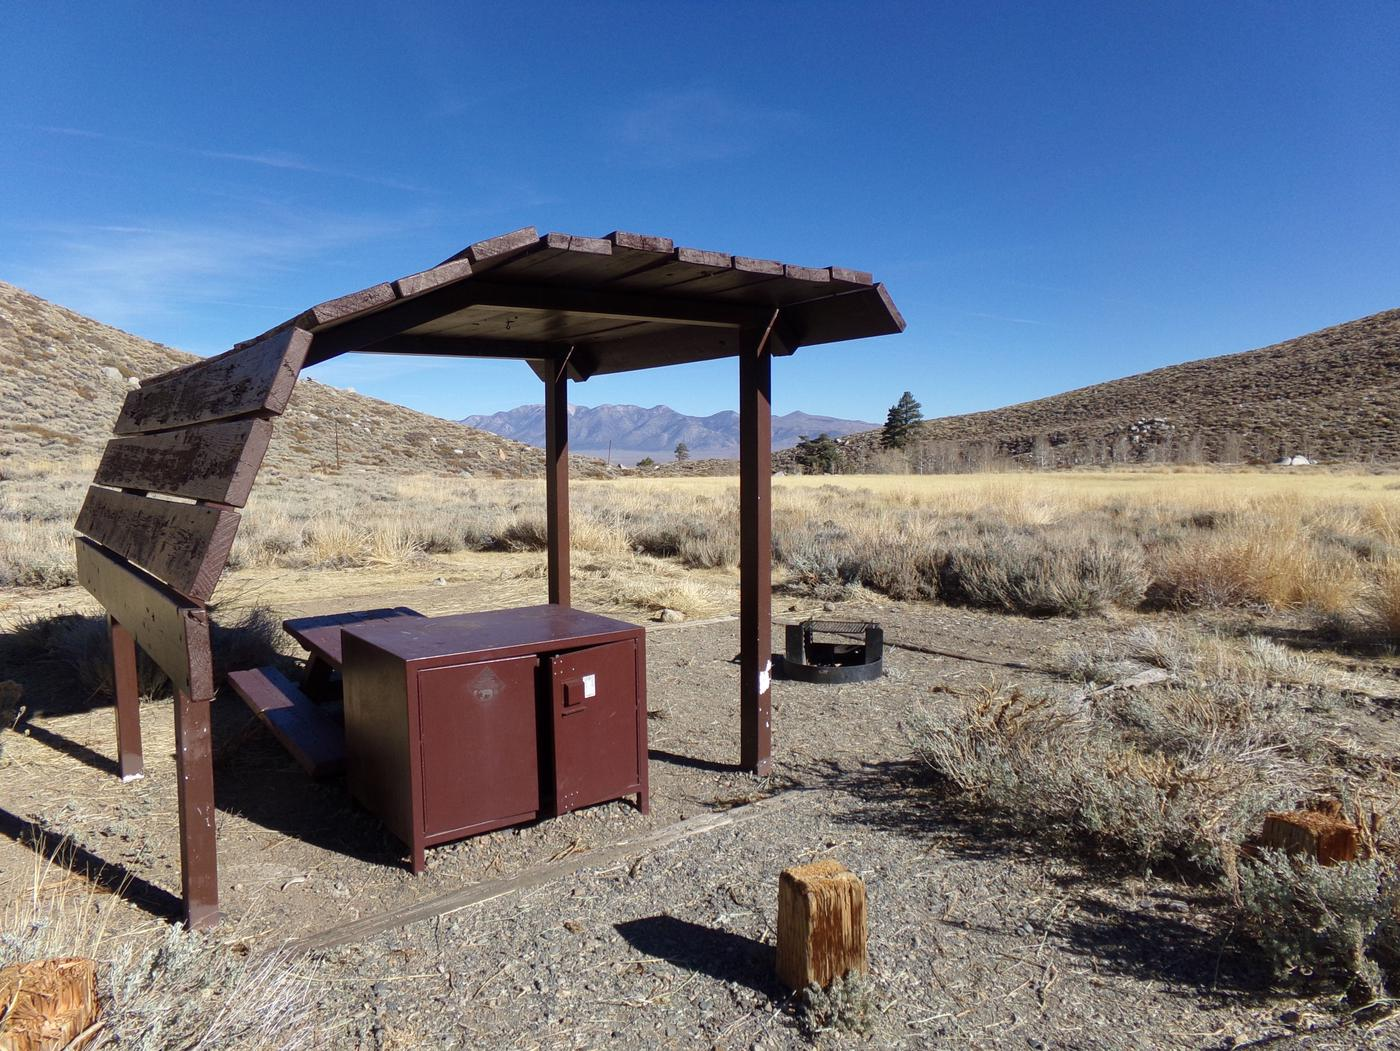 McGee Creek Campground site #01 featuring shaded picnic area with fire pit and camping space.